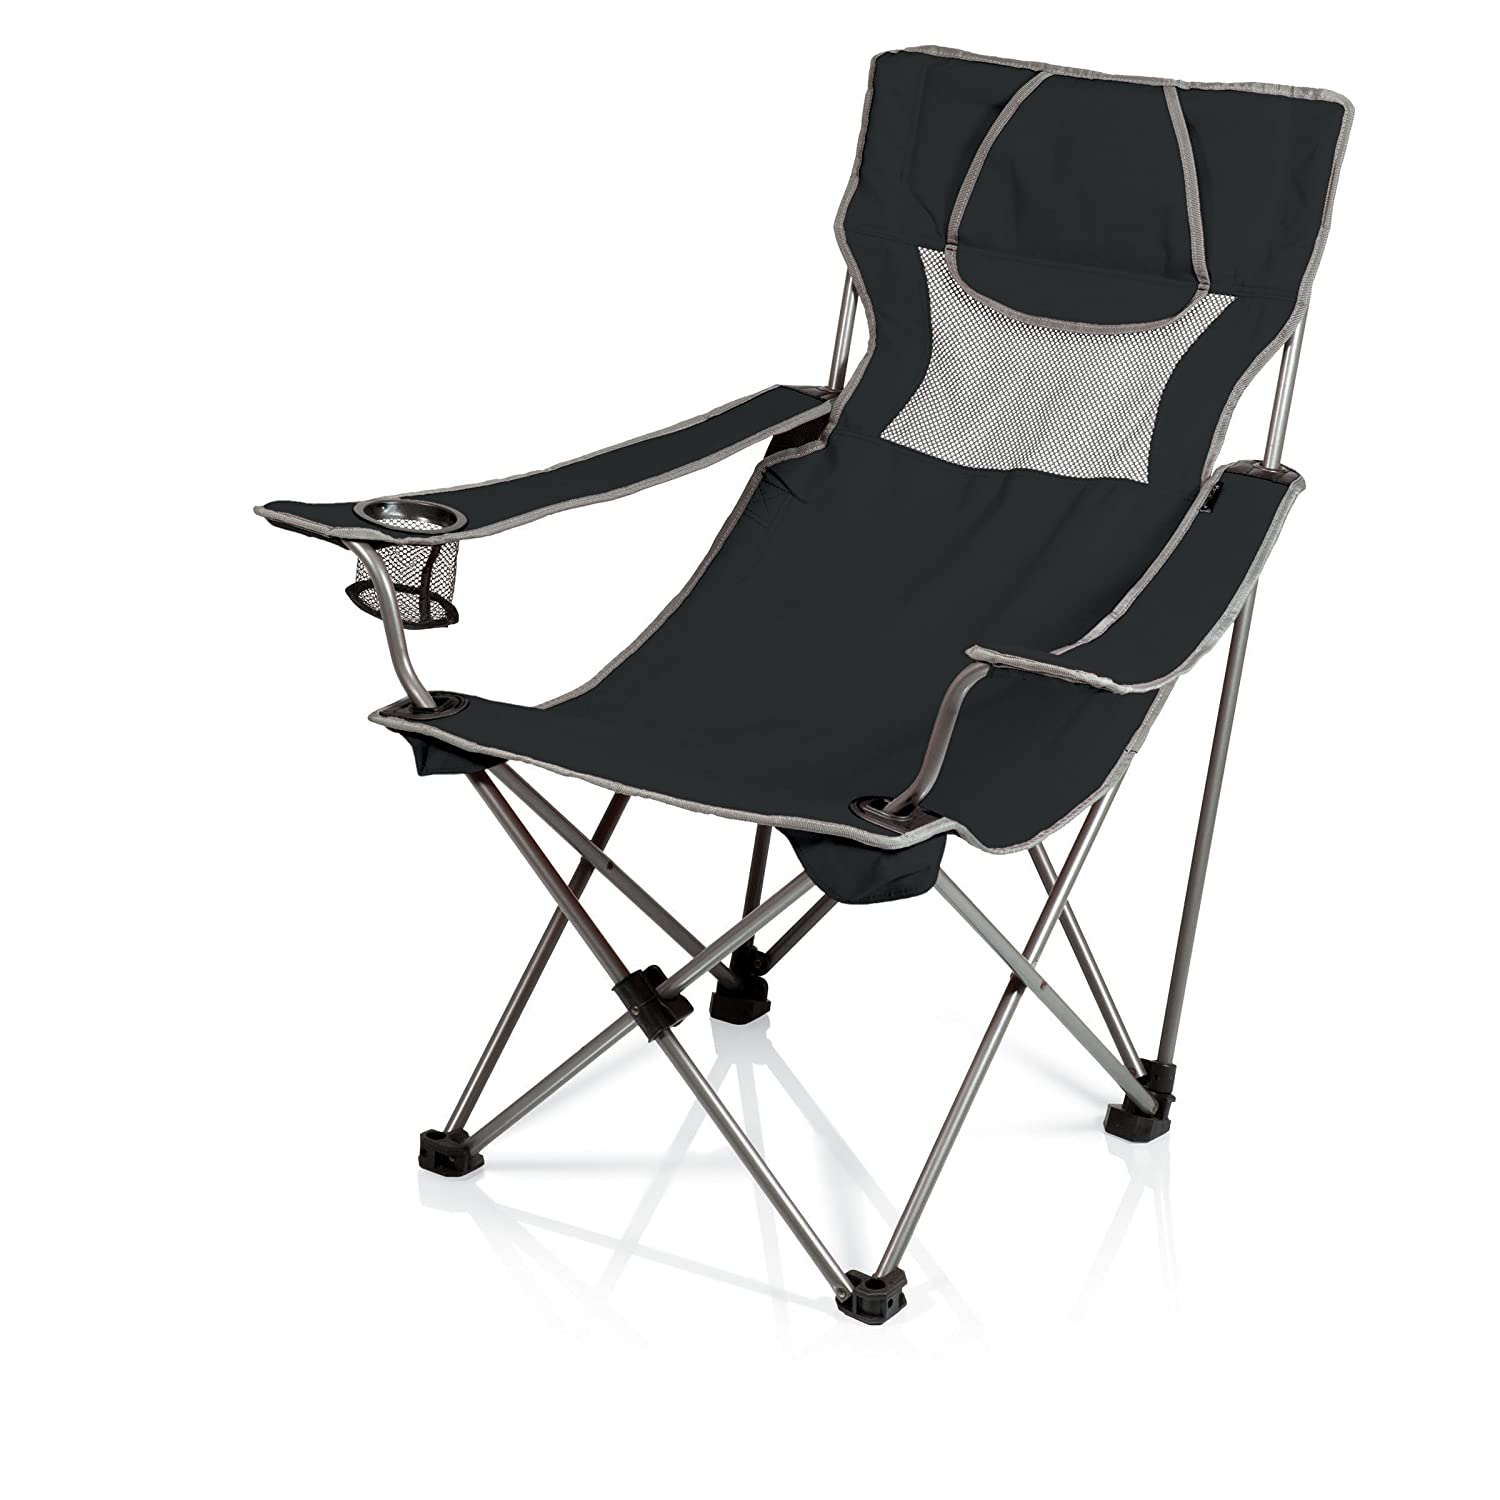 Delicieux Amazon.com : Picnic Time Campsite Folding Portable Chair, Black/Grey :  Camping Chairs : Sports U0026 Outdoors